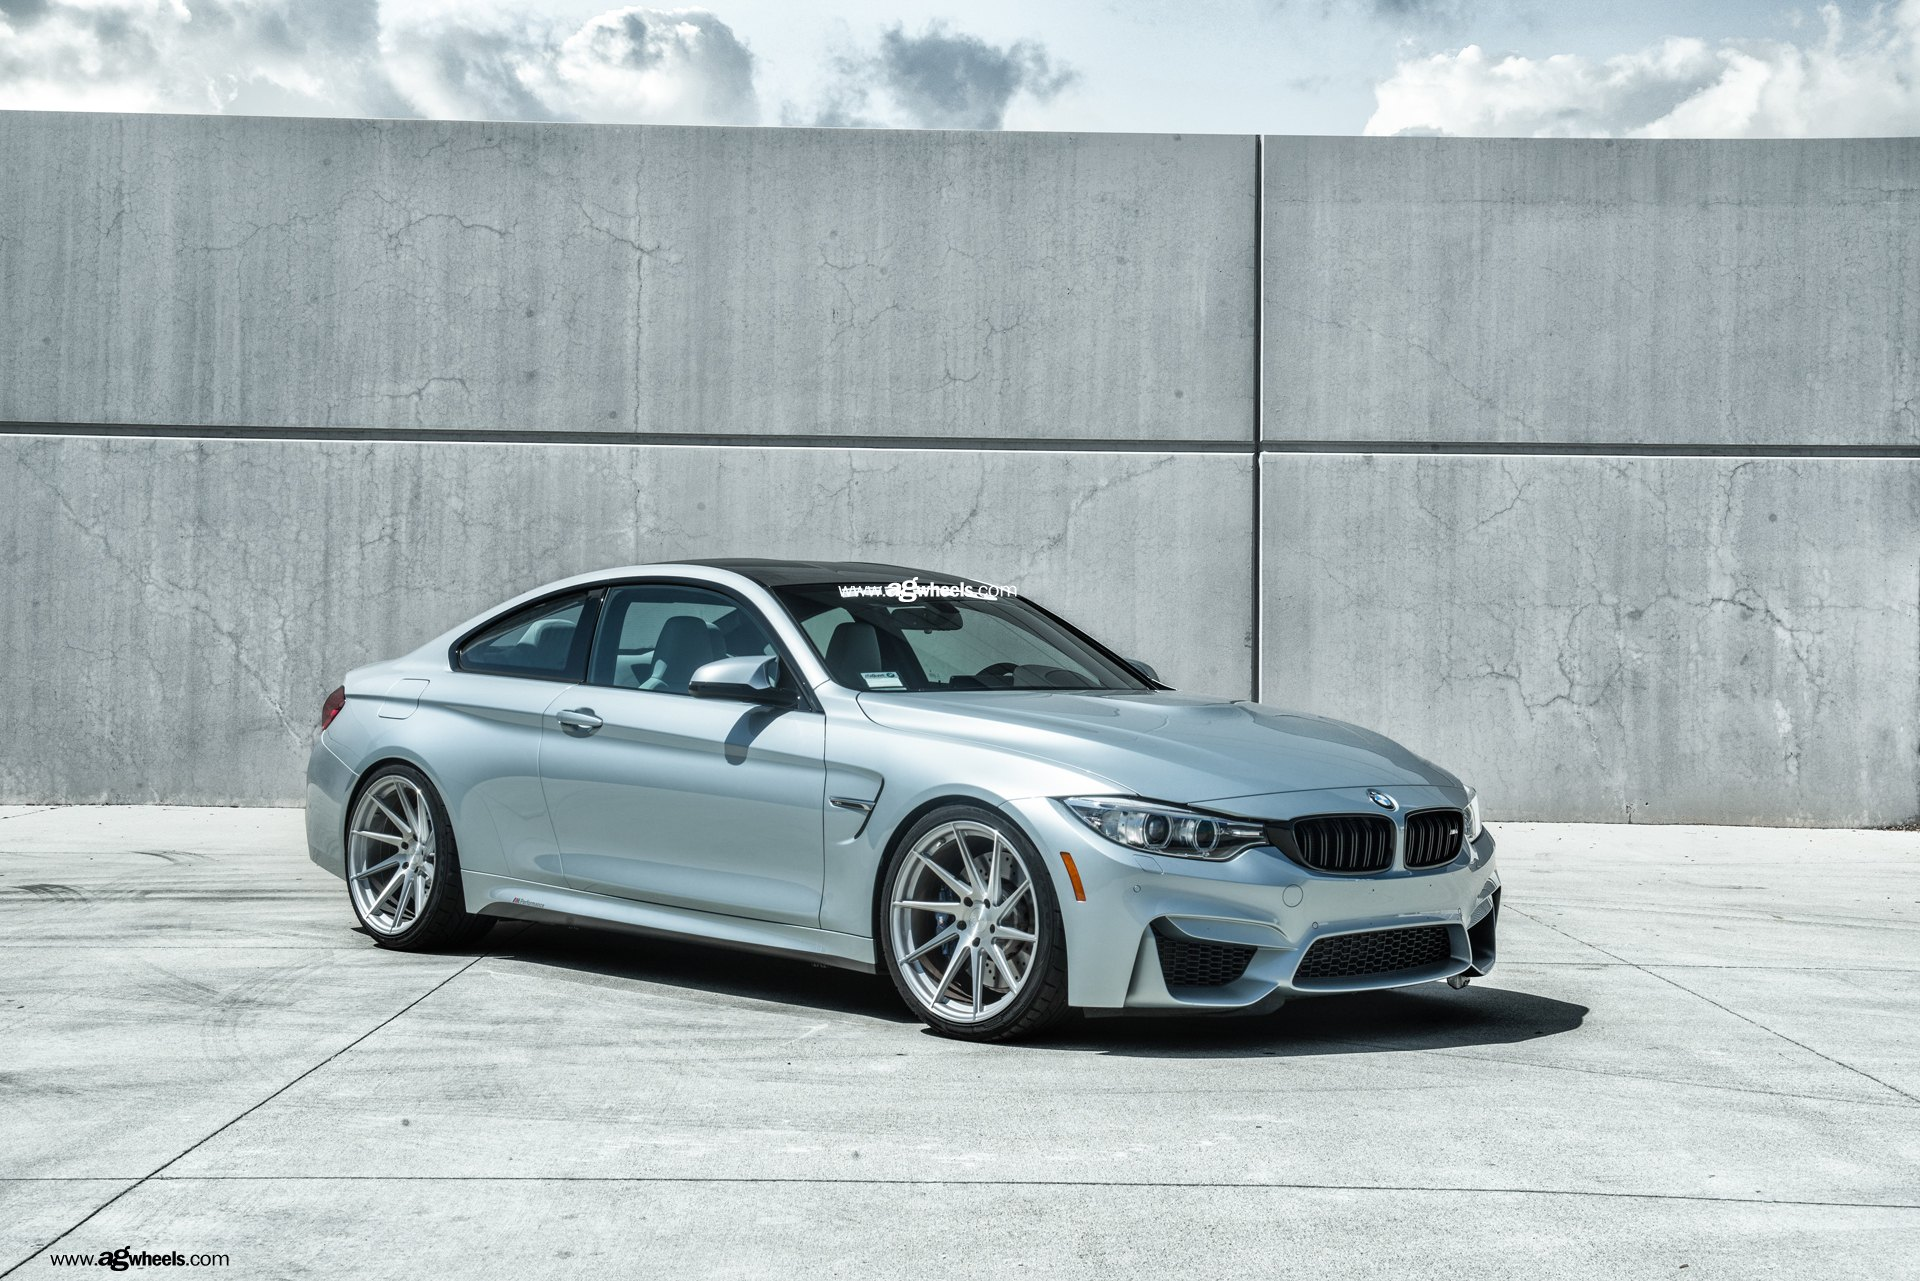 Deep Concave Rims By Avant Garde On Silver M4 Coupe